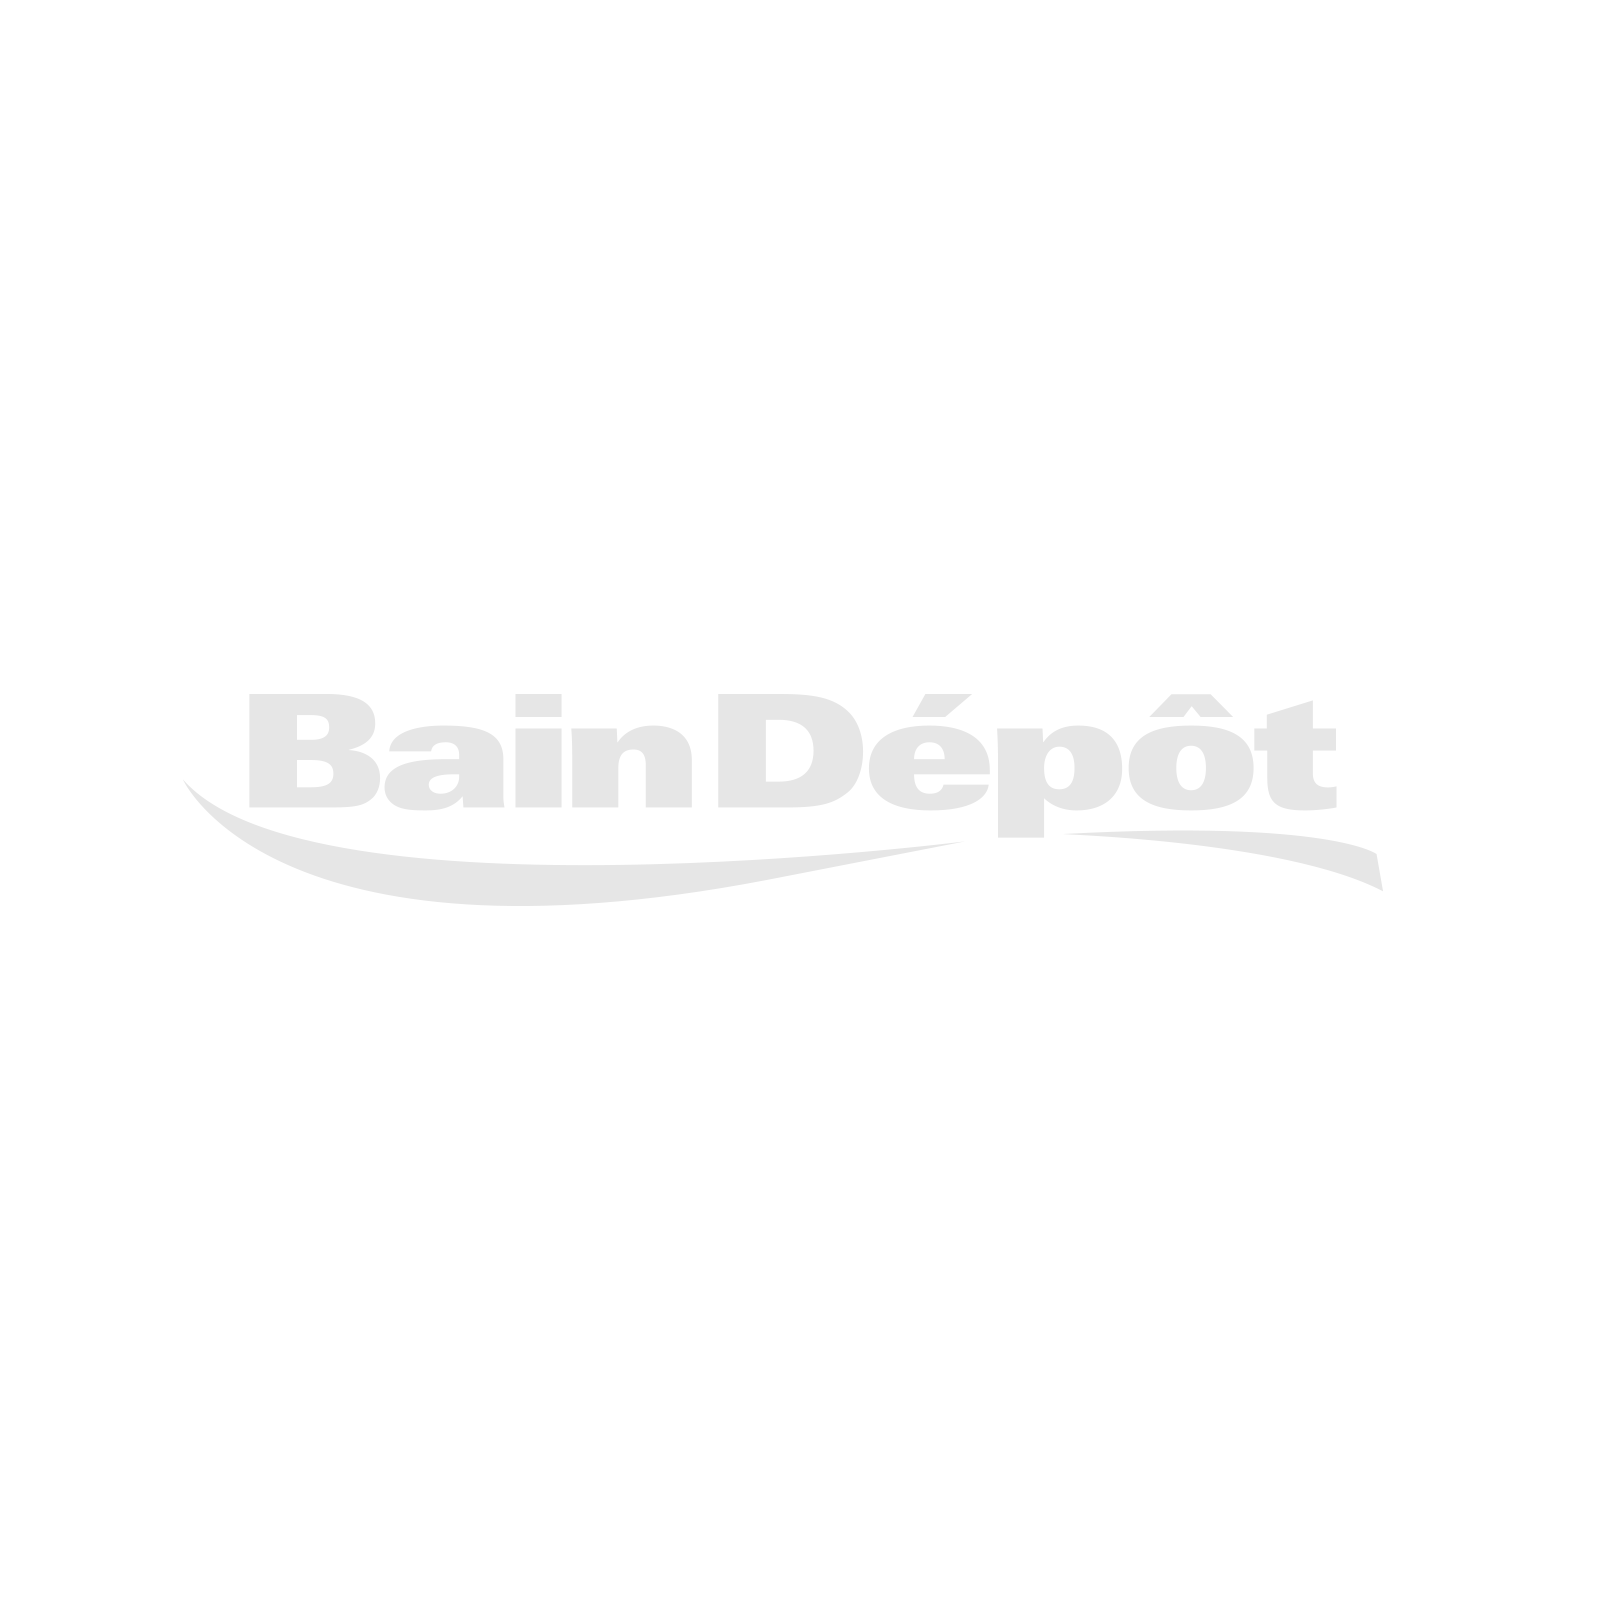 Brushed nickel finish pressure balance shower column with handshower and body jets